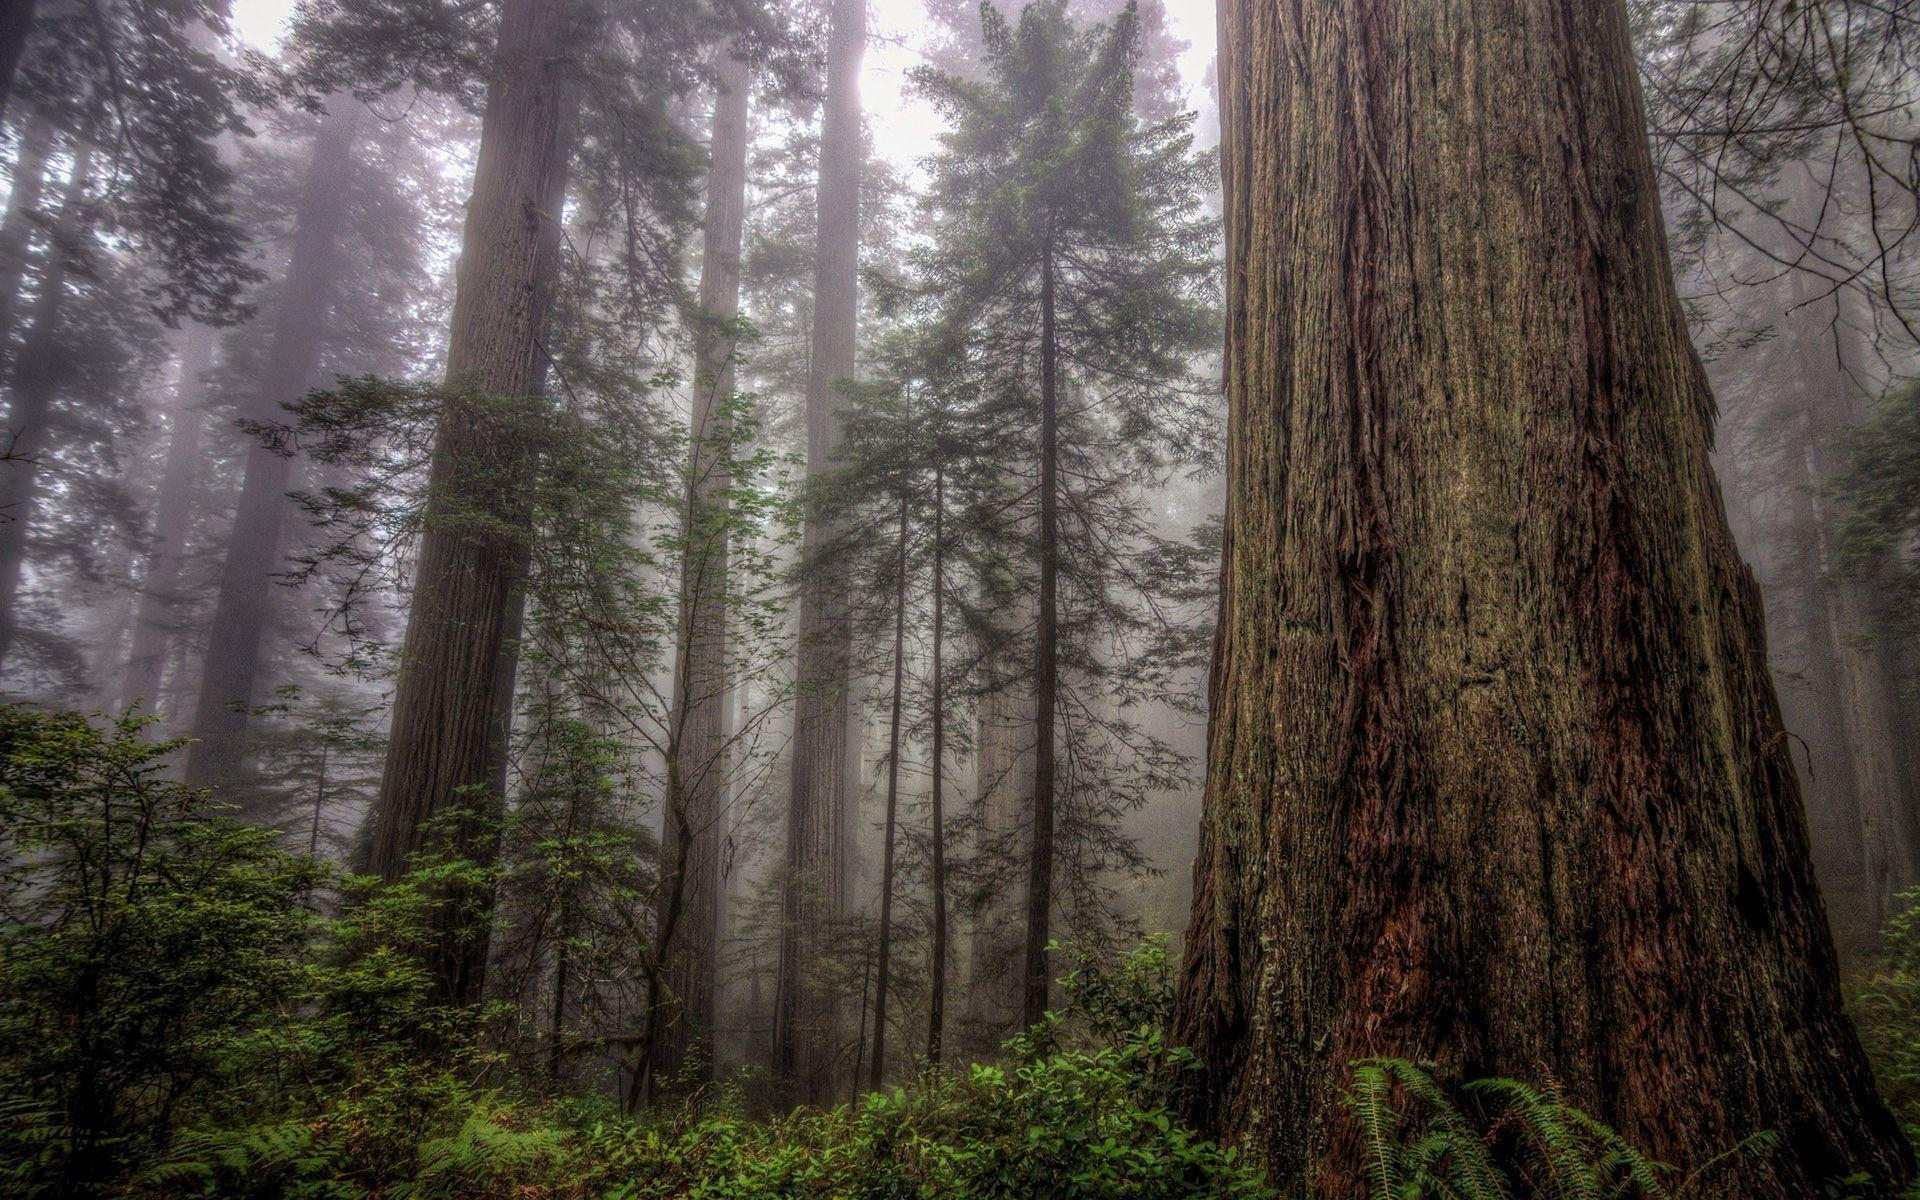 Happy Fall Wallpaper 1366x768 Hd Tall Trees In The Foggy Forest Wallpaper Download